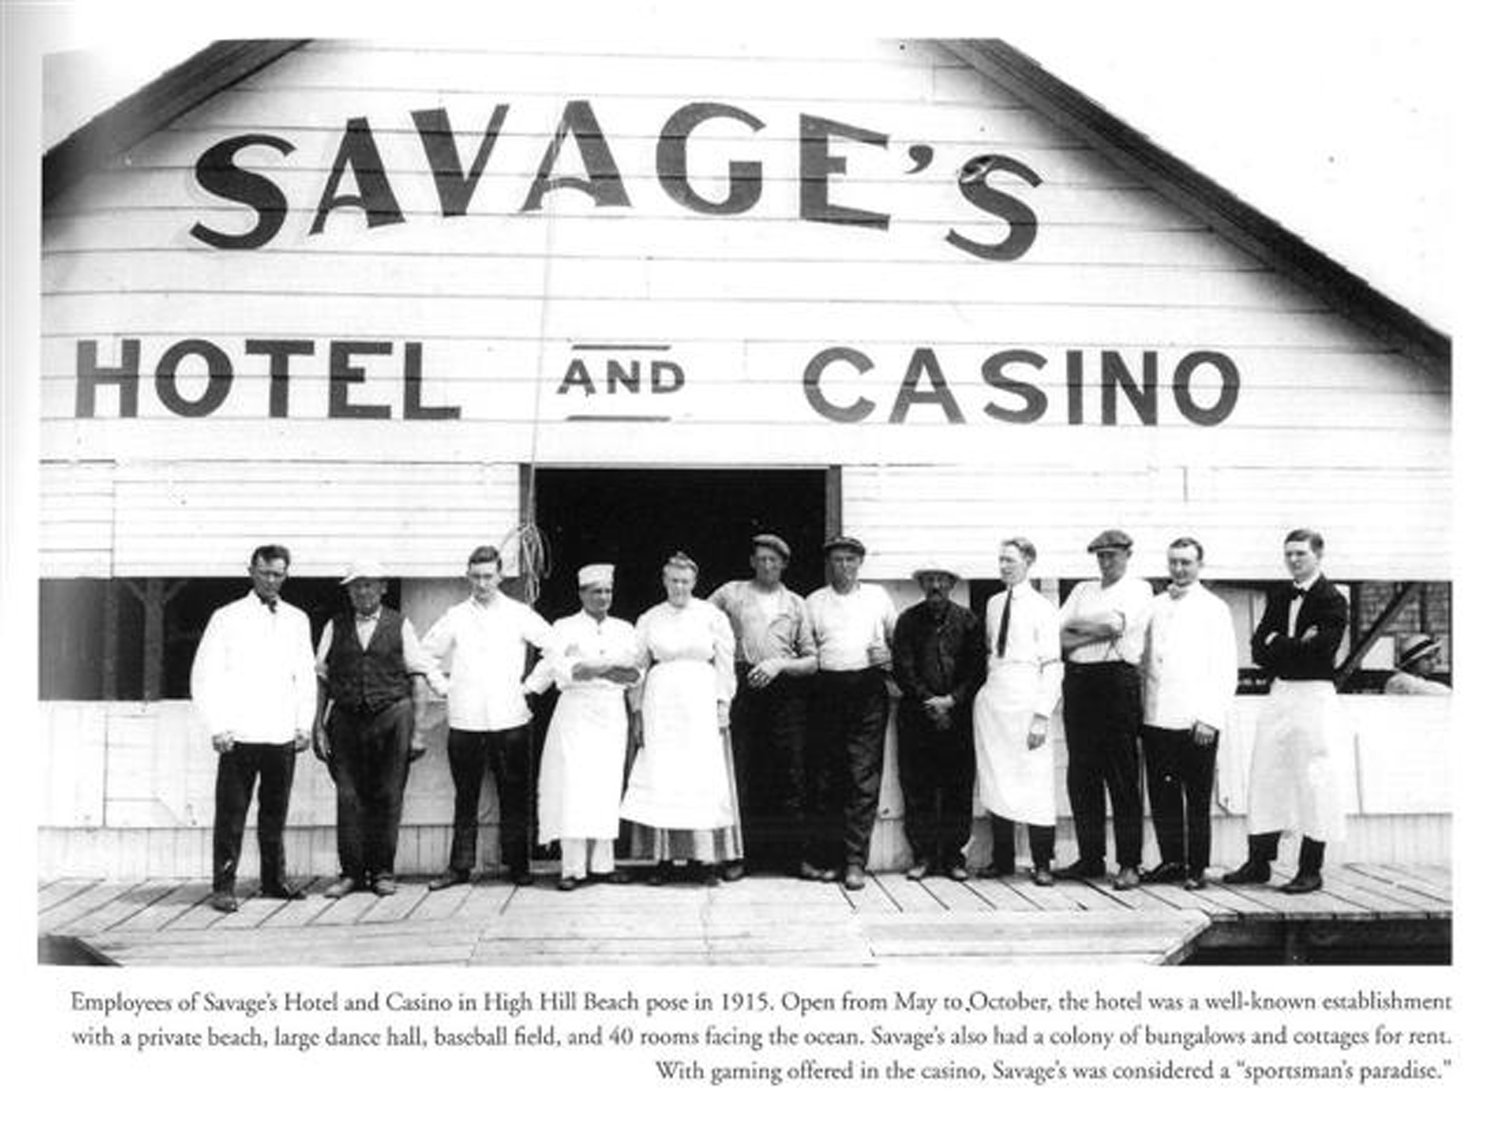 Savage Hotel and Casino, circa 1920, catered to a local crowd from Long Island and New York City